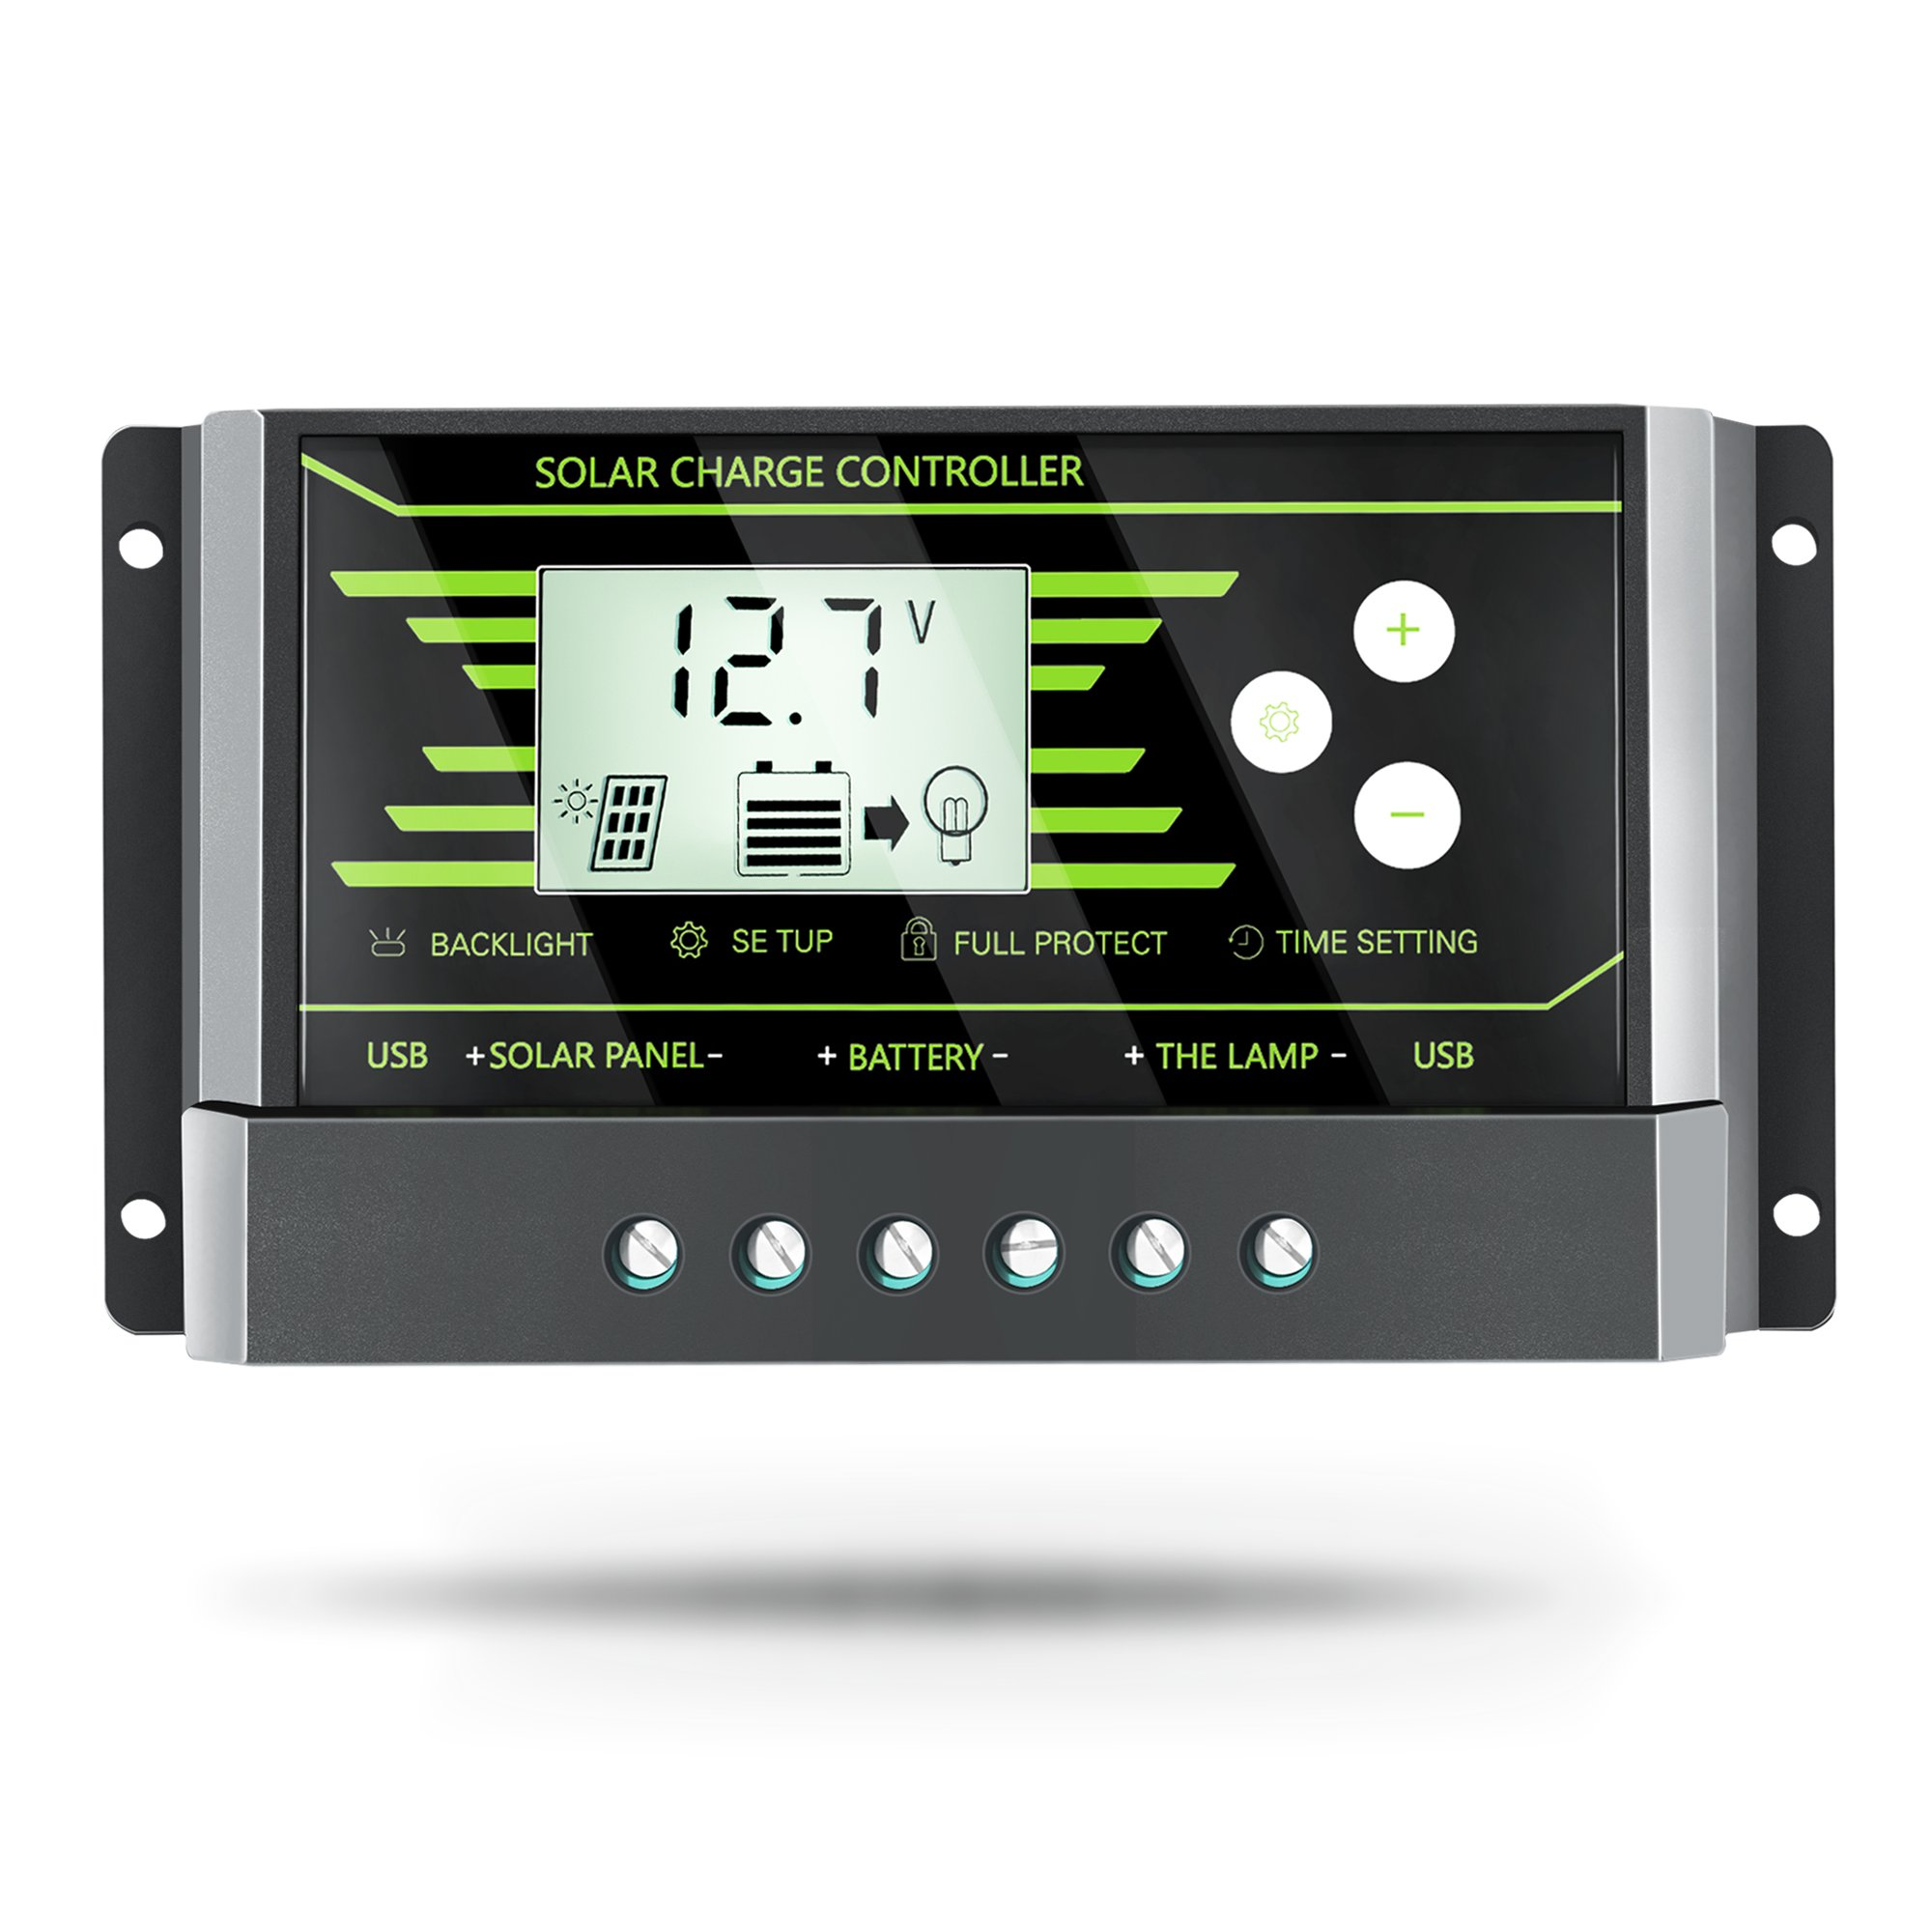 PowMr 30A Solar Charge Controller, Solar Panel Charge Controller 12V 24V Dual USB, Adjustable Parameter Backlight LCD Display and Timer Setting ON/Off Hours(Z30A) by PowMr